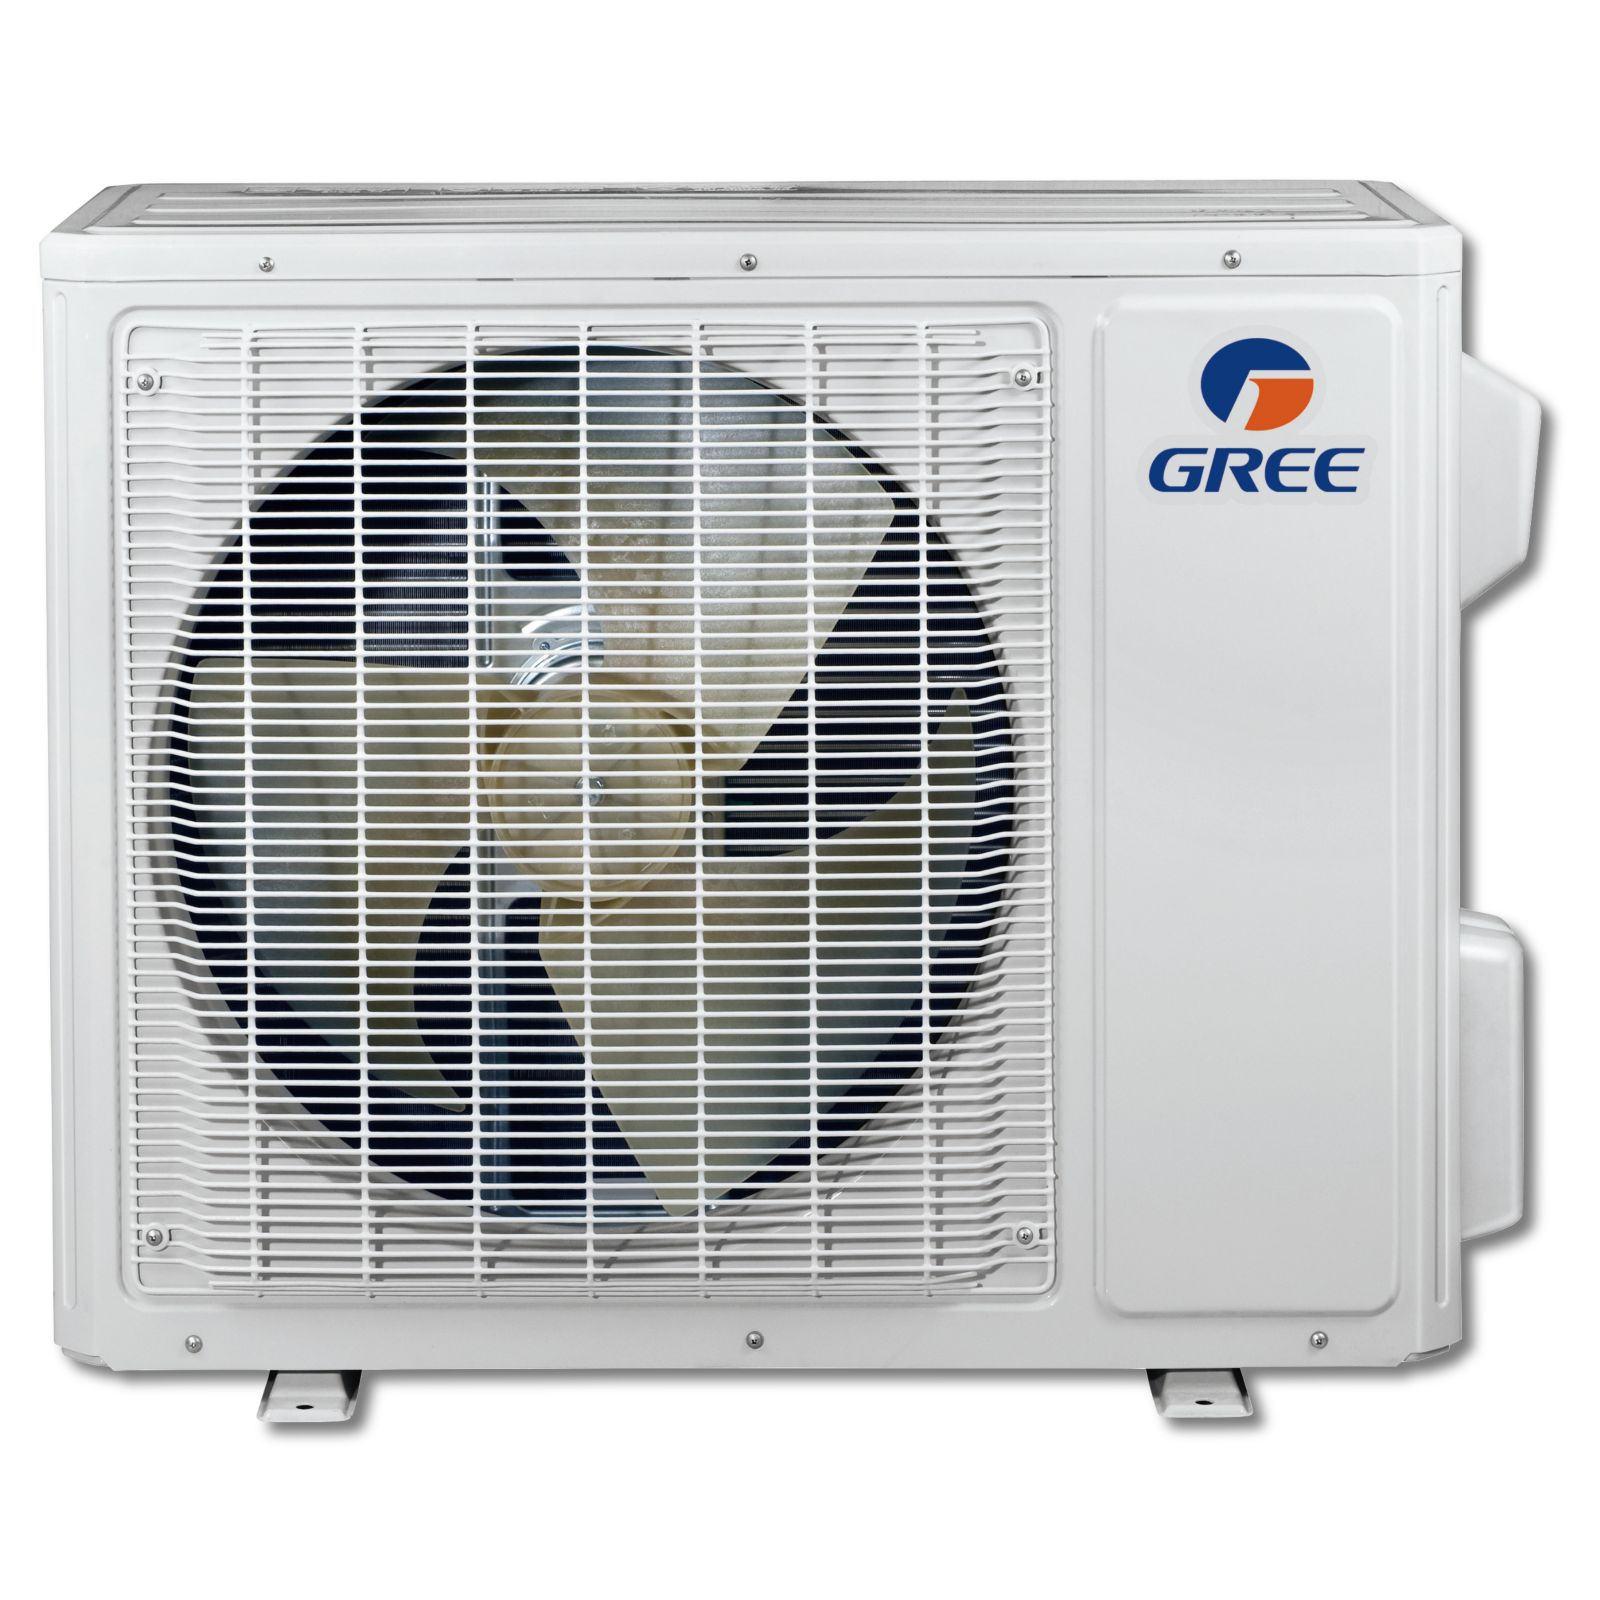 GREE TERRA18HP230V1AO - 1 1/2 Ton 21 SEER TERRA Ductless Mini-Split Heat Pump 208-230 V